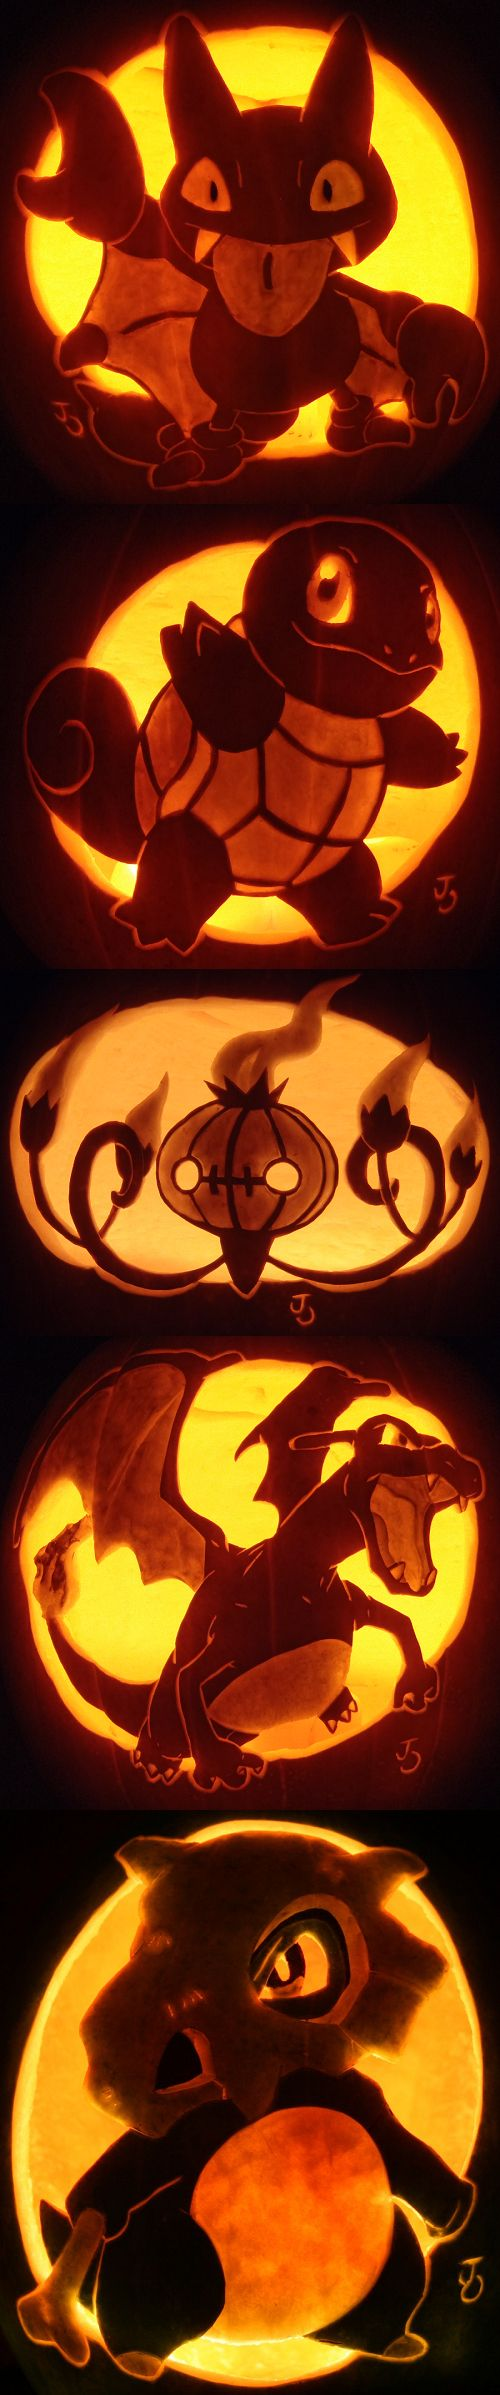 Pokemon pumpkin!